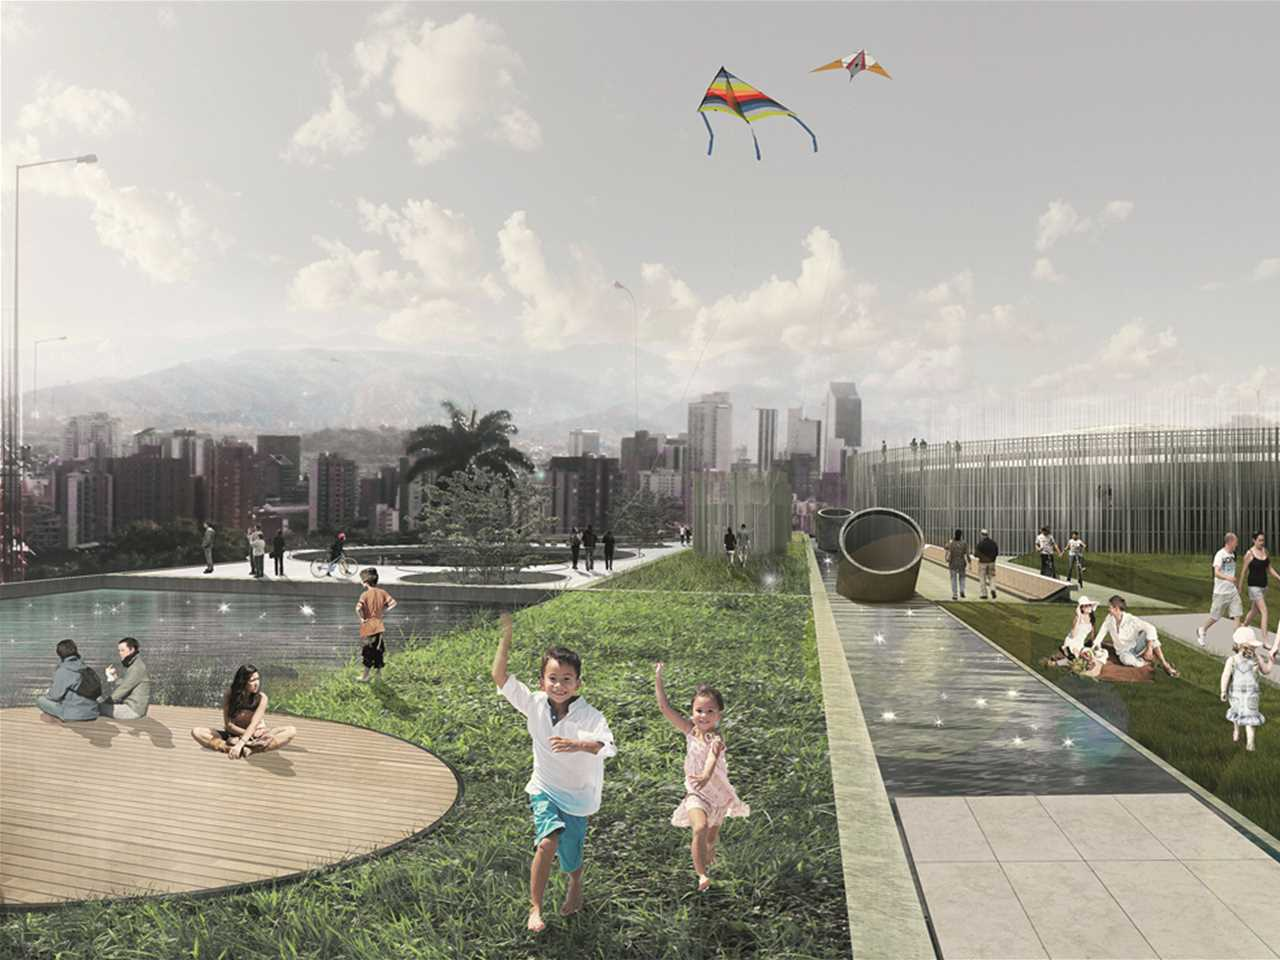 Global finalist entry 2015 - Articulated Site: Water reservoirs as public park